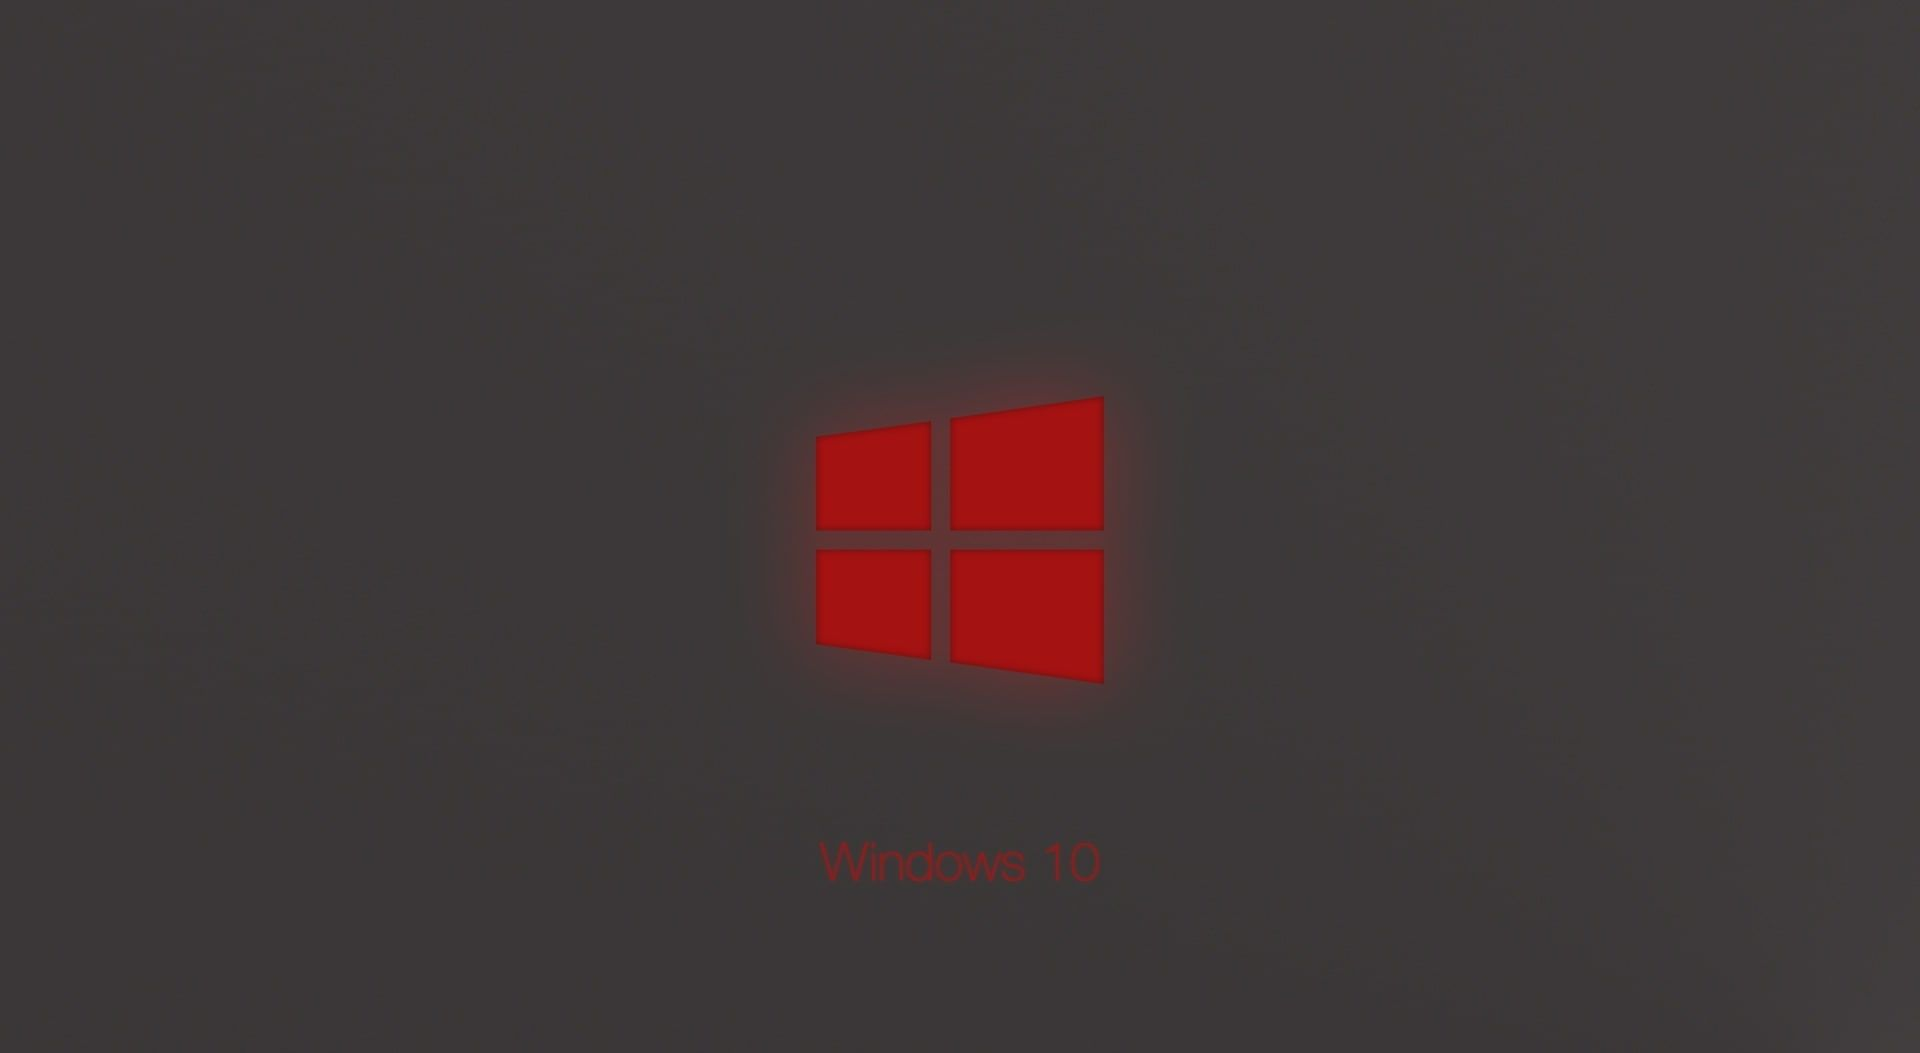 Windows 10 Technical Preview Red Glow Red Windows Logo Wallpaper Windows Windows 10 1080p Wallpaper Hdwallpaper Deskto Red Windows Hd Wallpaper Wallpaper